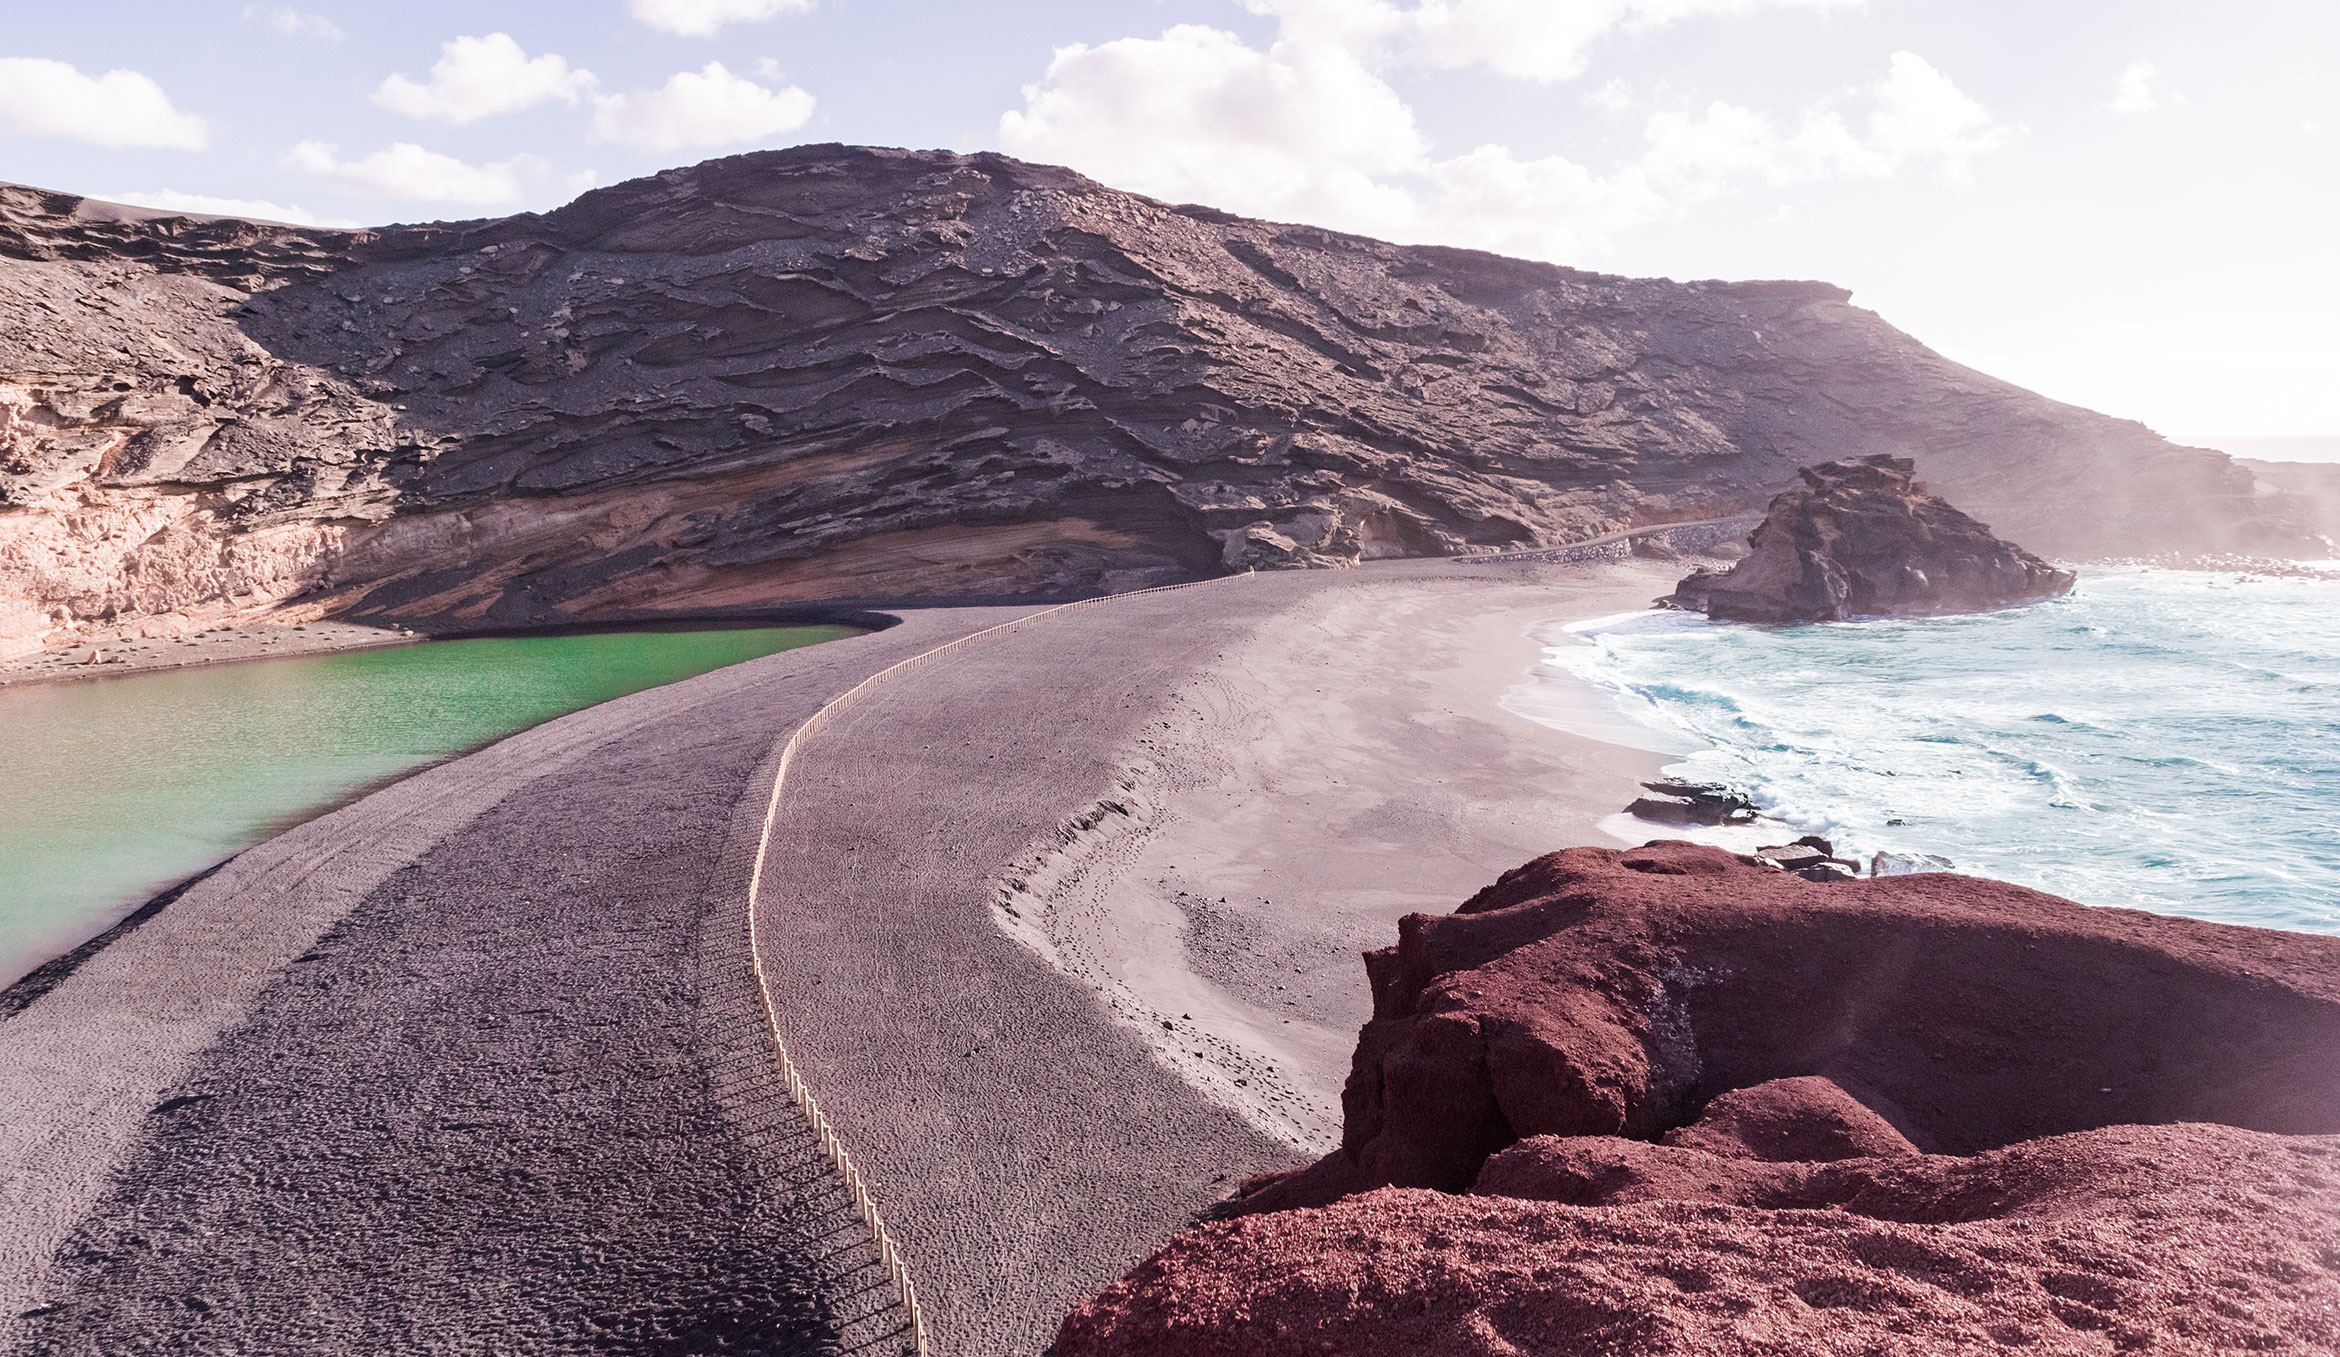 Island of Lanzarote, Canary Islands